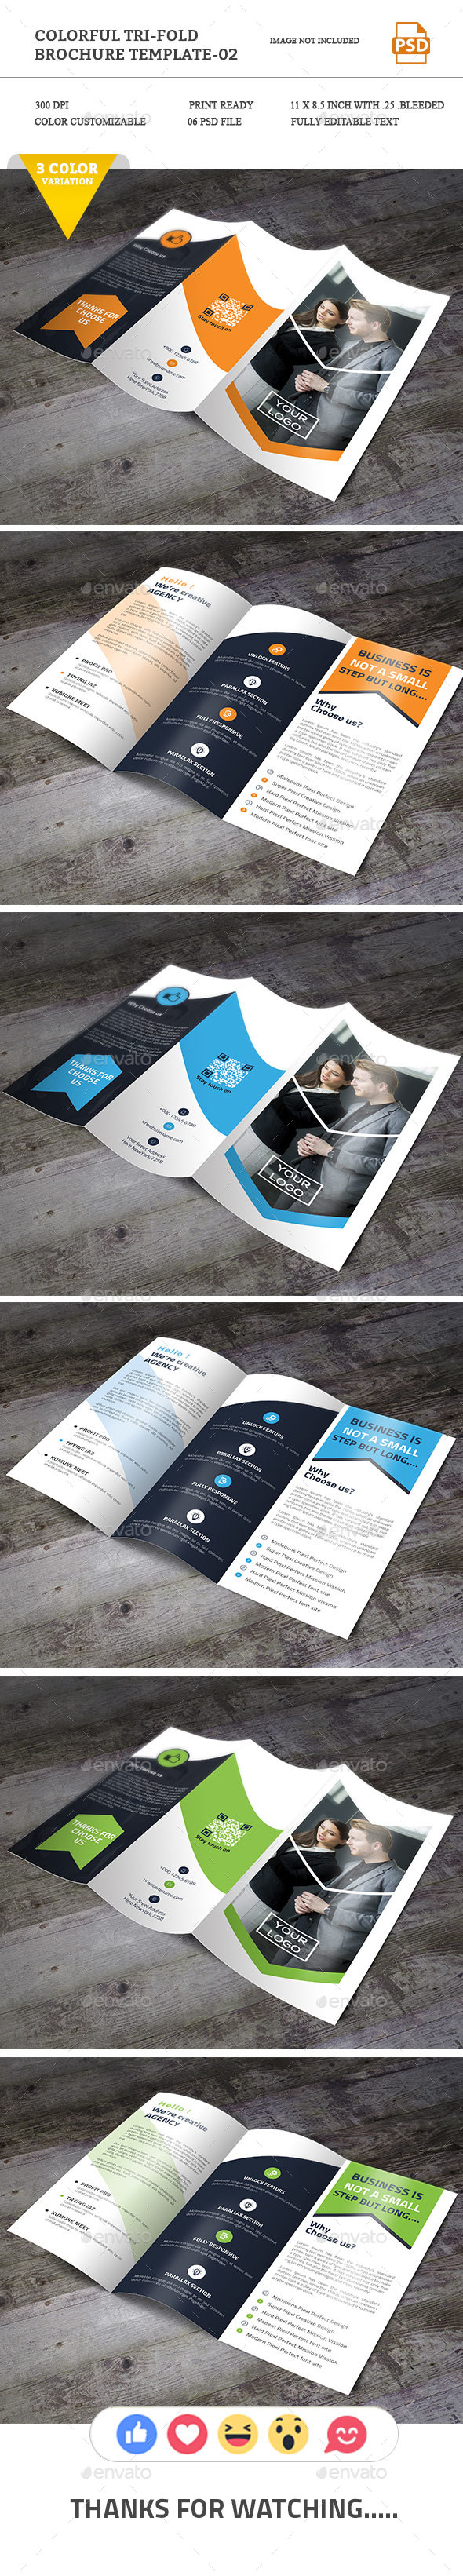 Colorful Tri-fold Brochure-02 - Brochures Print Templates